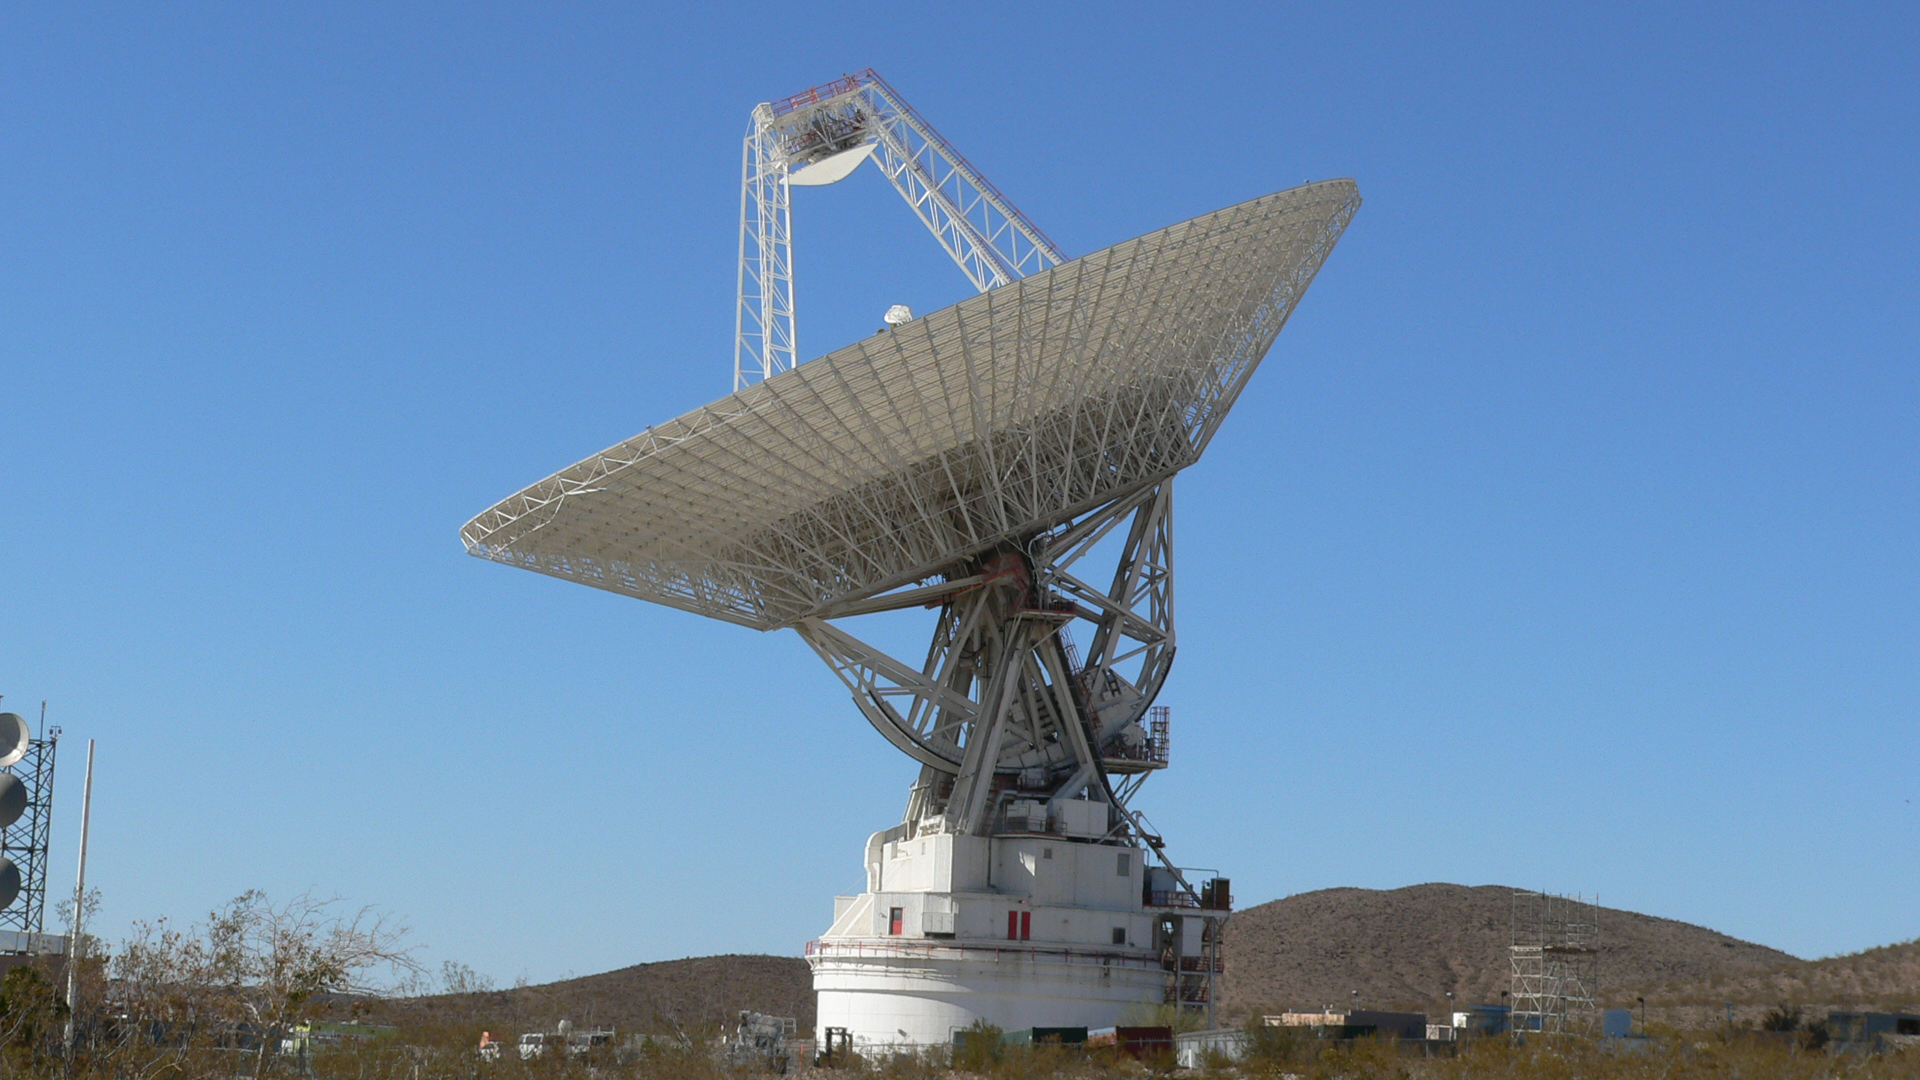 nasa satellite dish - photo #39